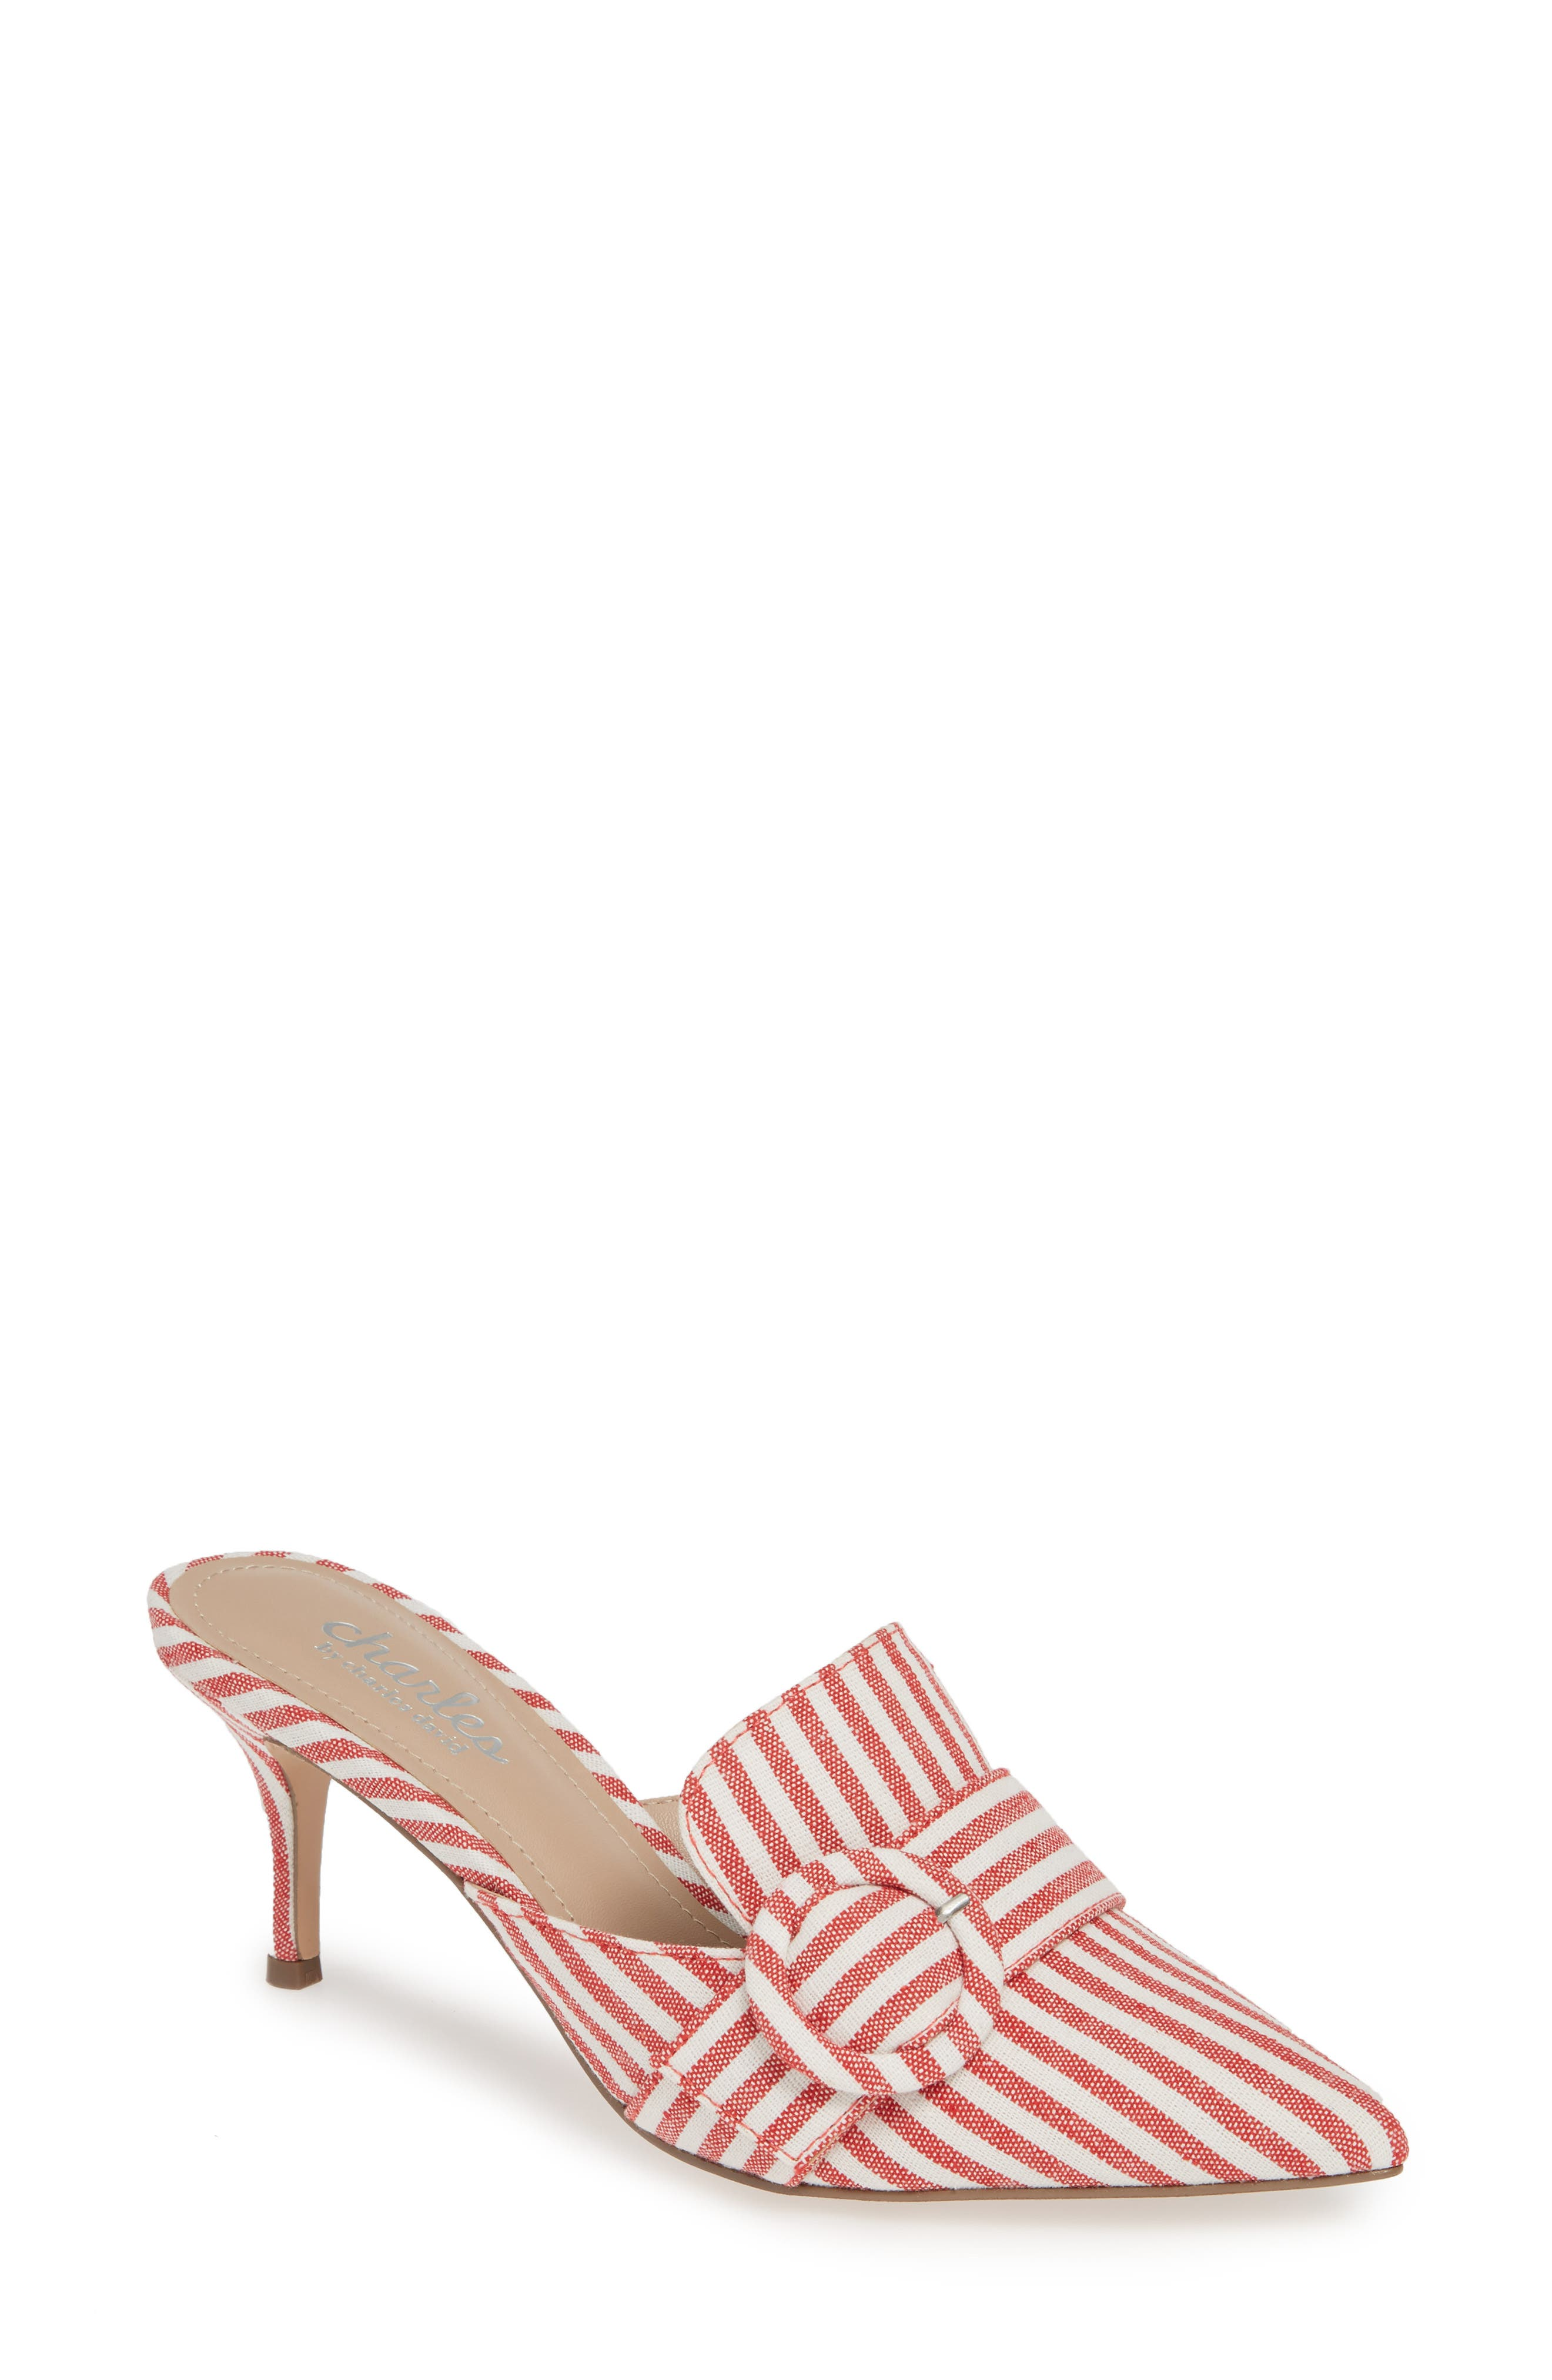 CHARLES BY CHARLES DAVID, Acapulco Mule, Main thumbnail 1, color, CANDY RED FABRIC